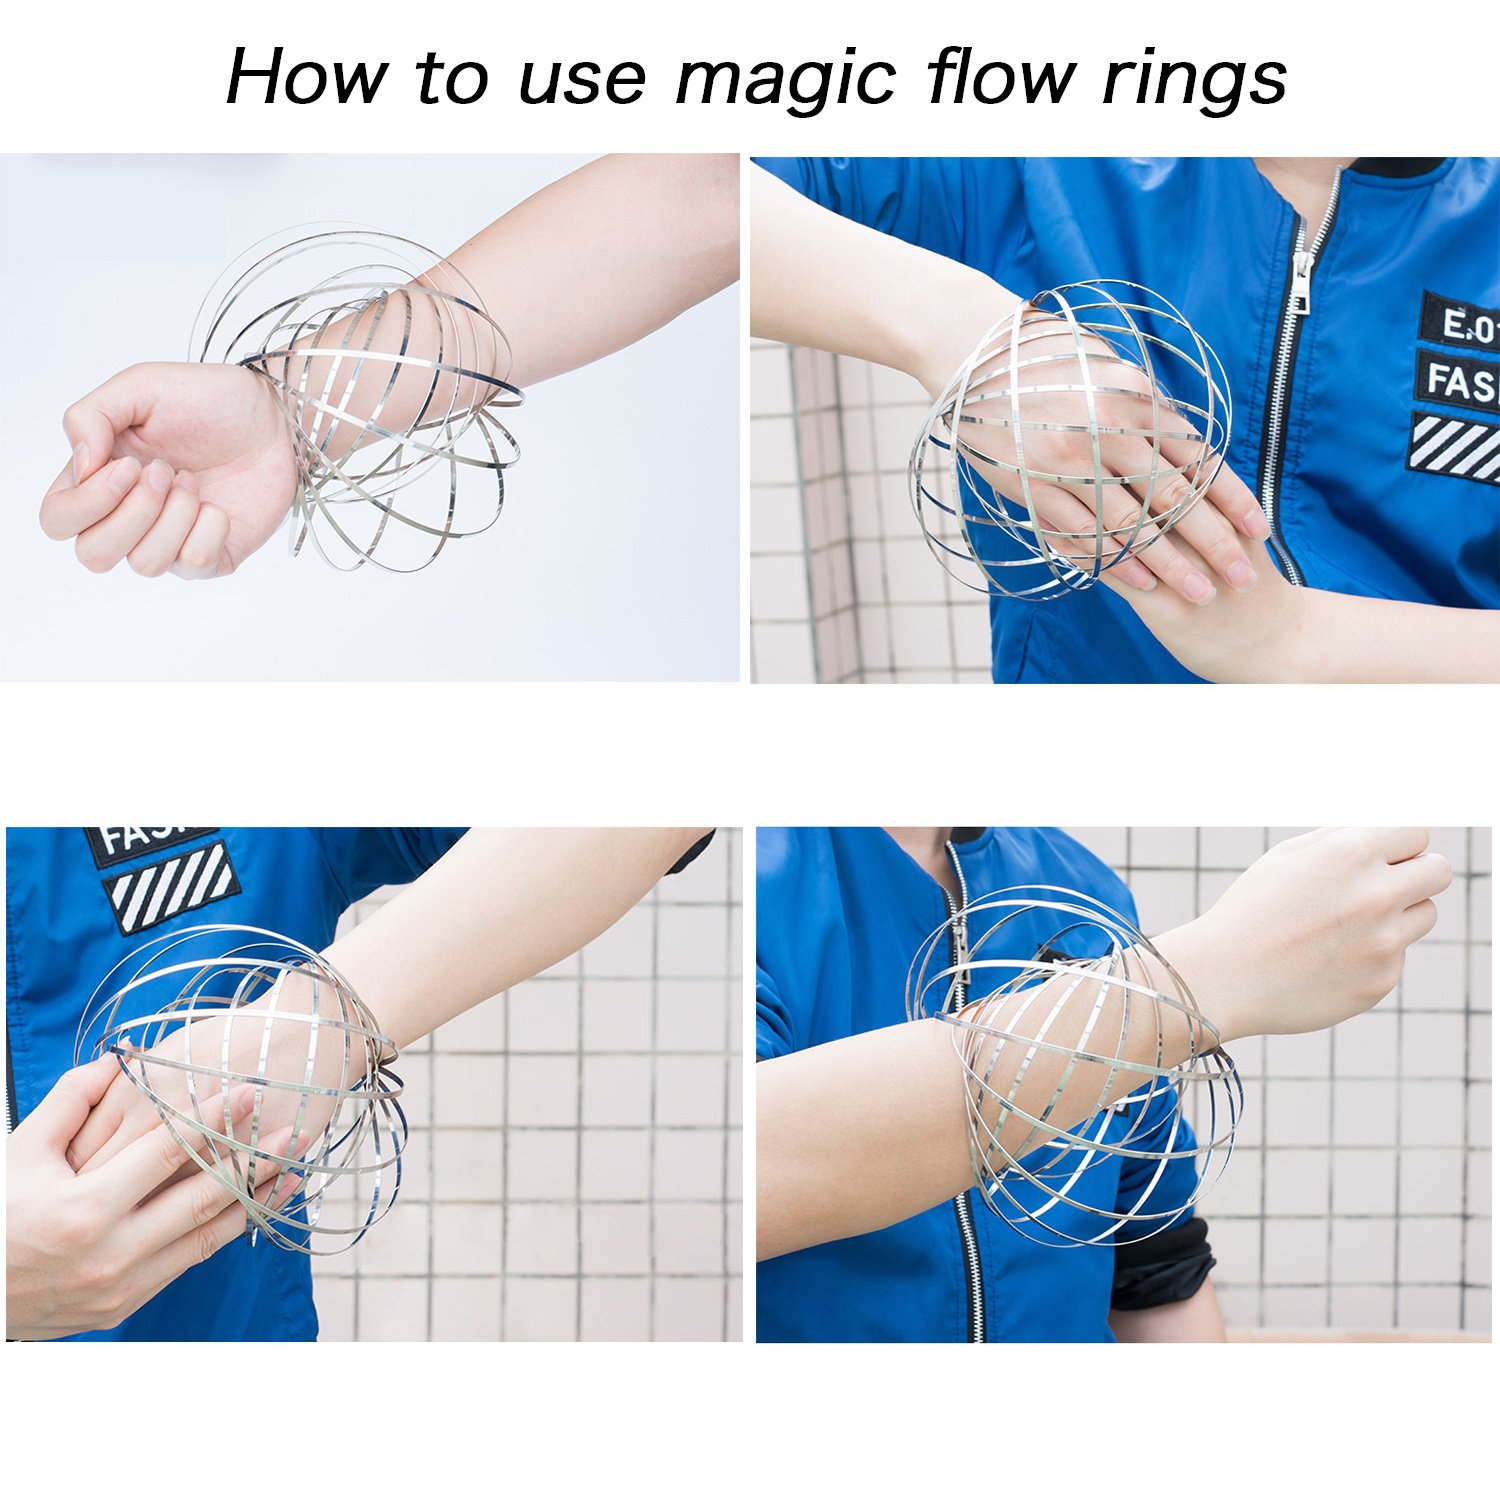 Lazarap Flow Ring Kinetic 3D Spring Toy Sculpture Ring Game Toy For Kids Boys And Girls Rave Accessories Festival Accessories Lazarap Production Department